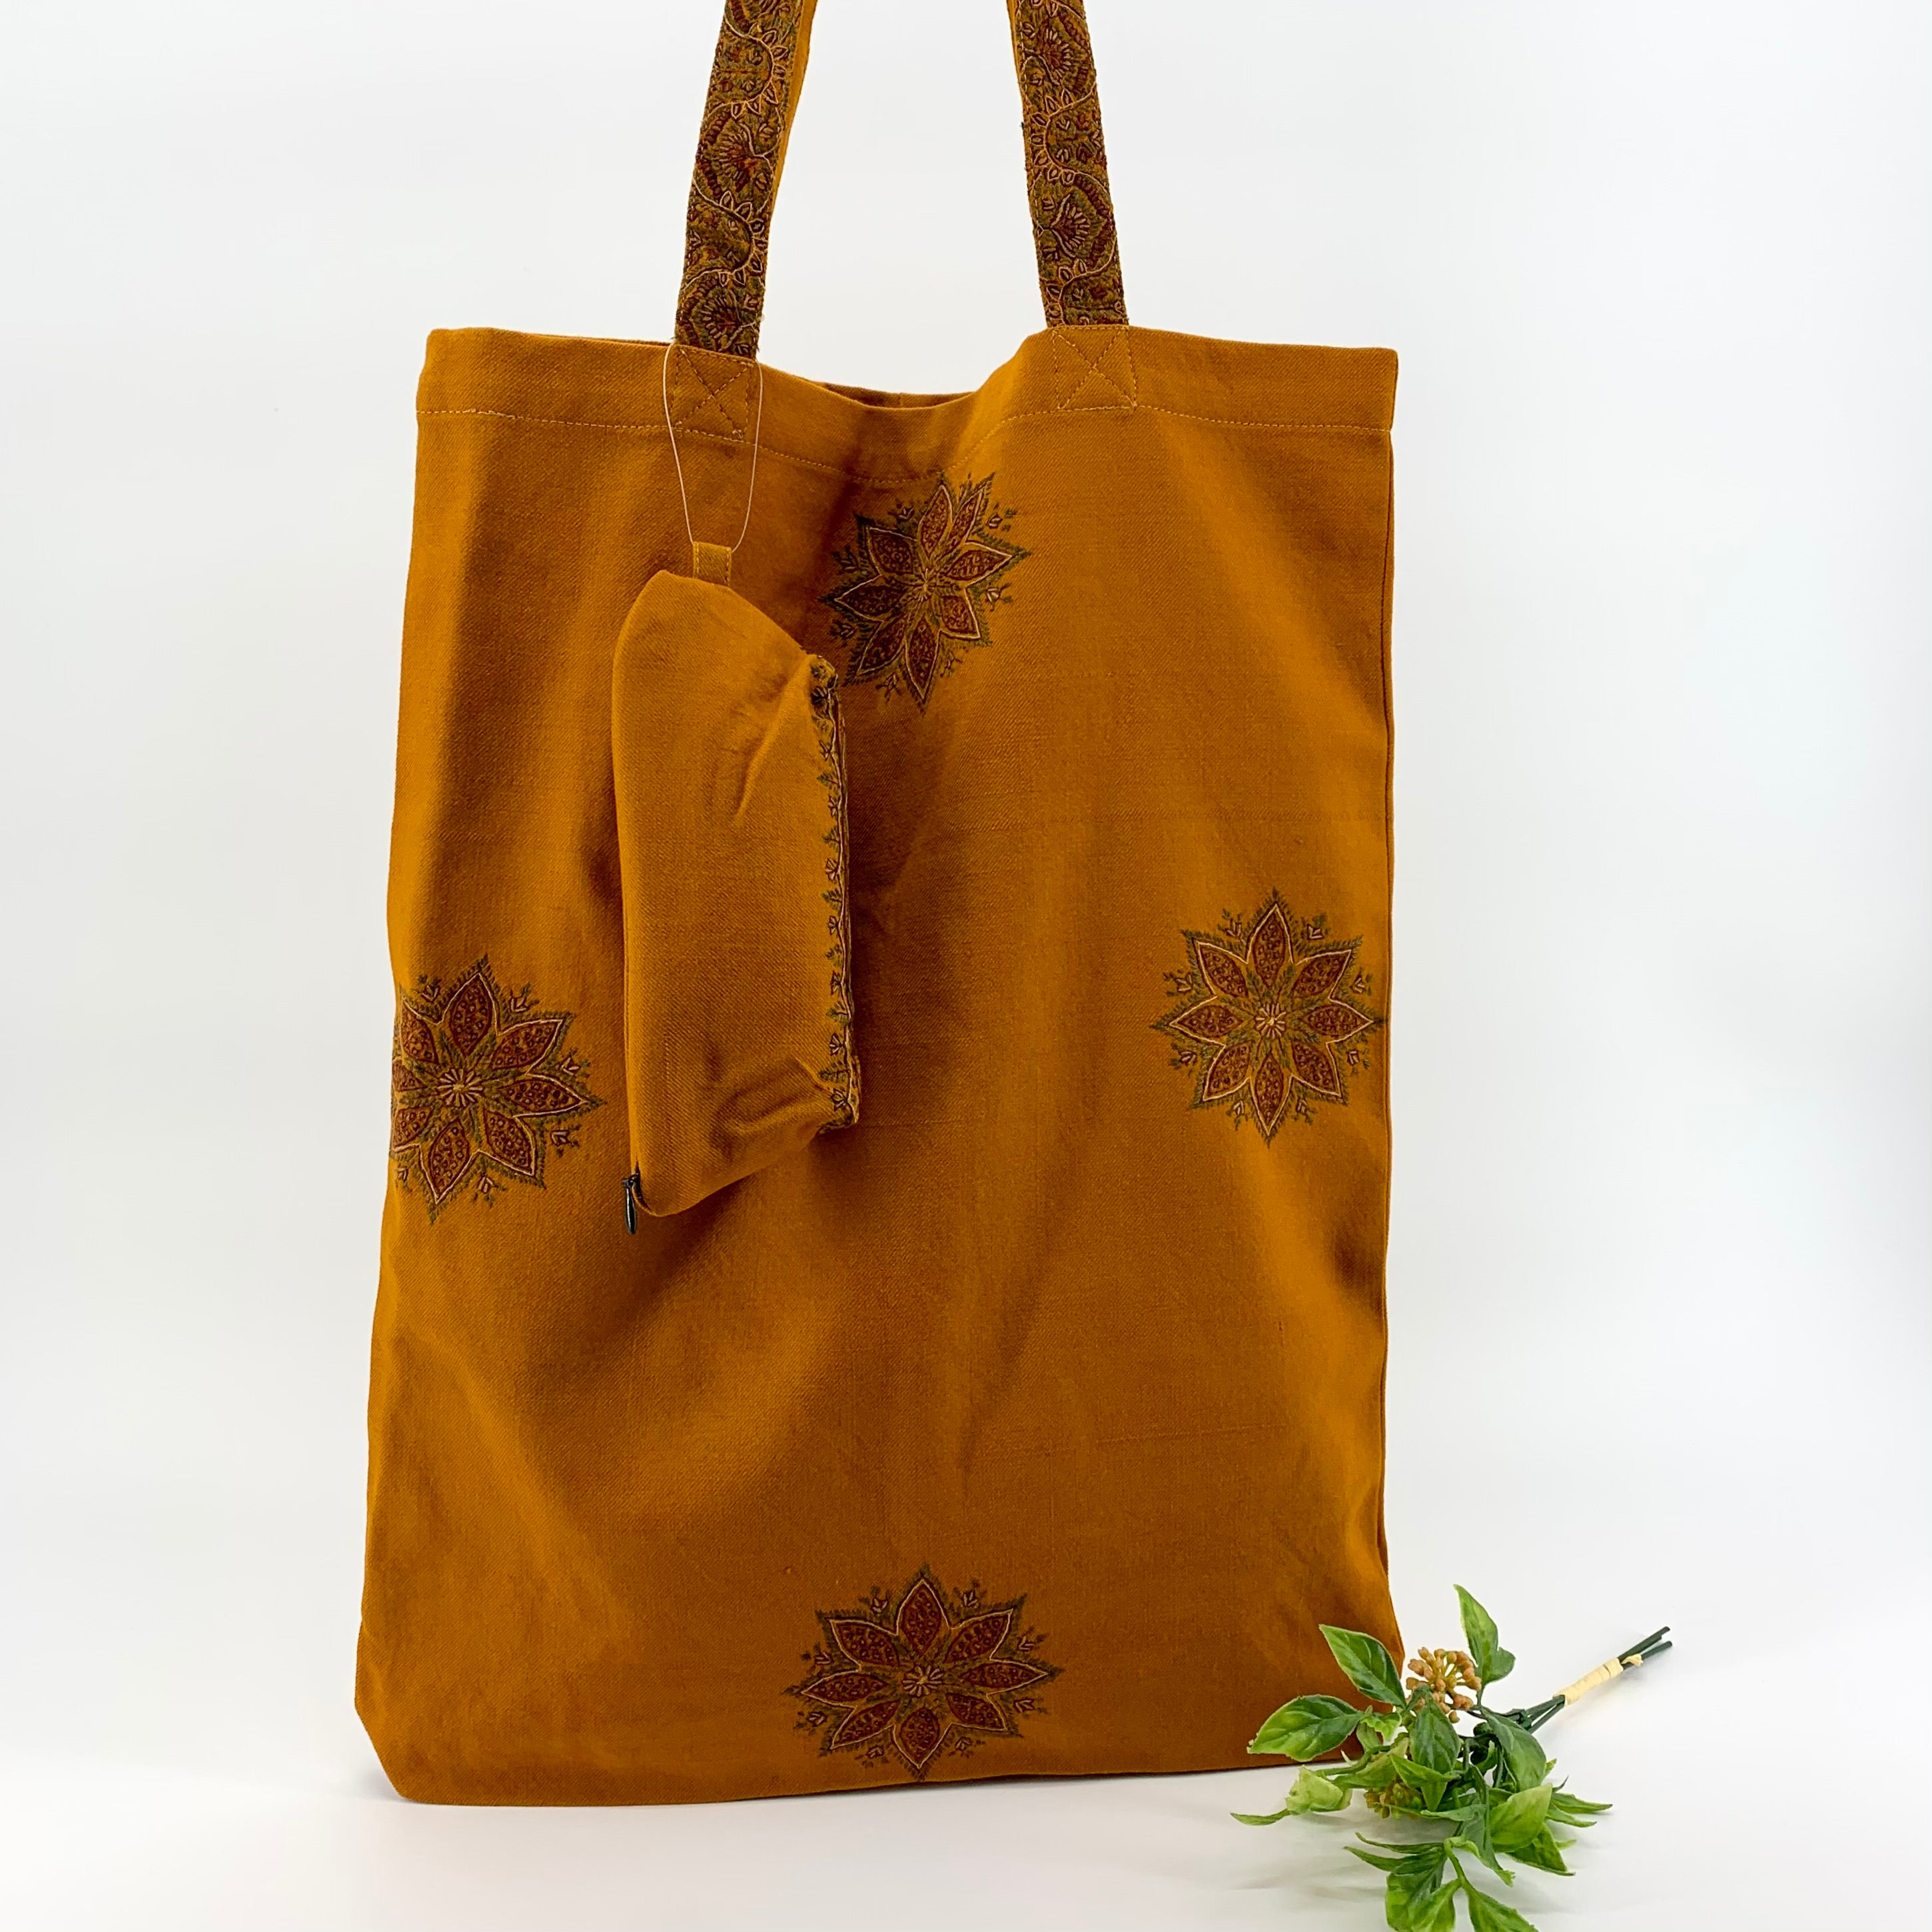 Handcrafted Multipurpose Large Tote Bag with Zipper Pouch